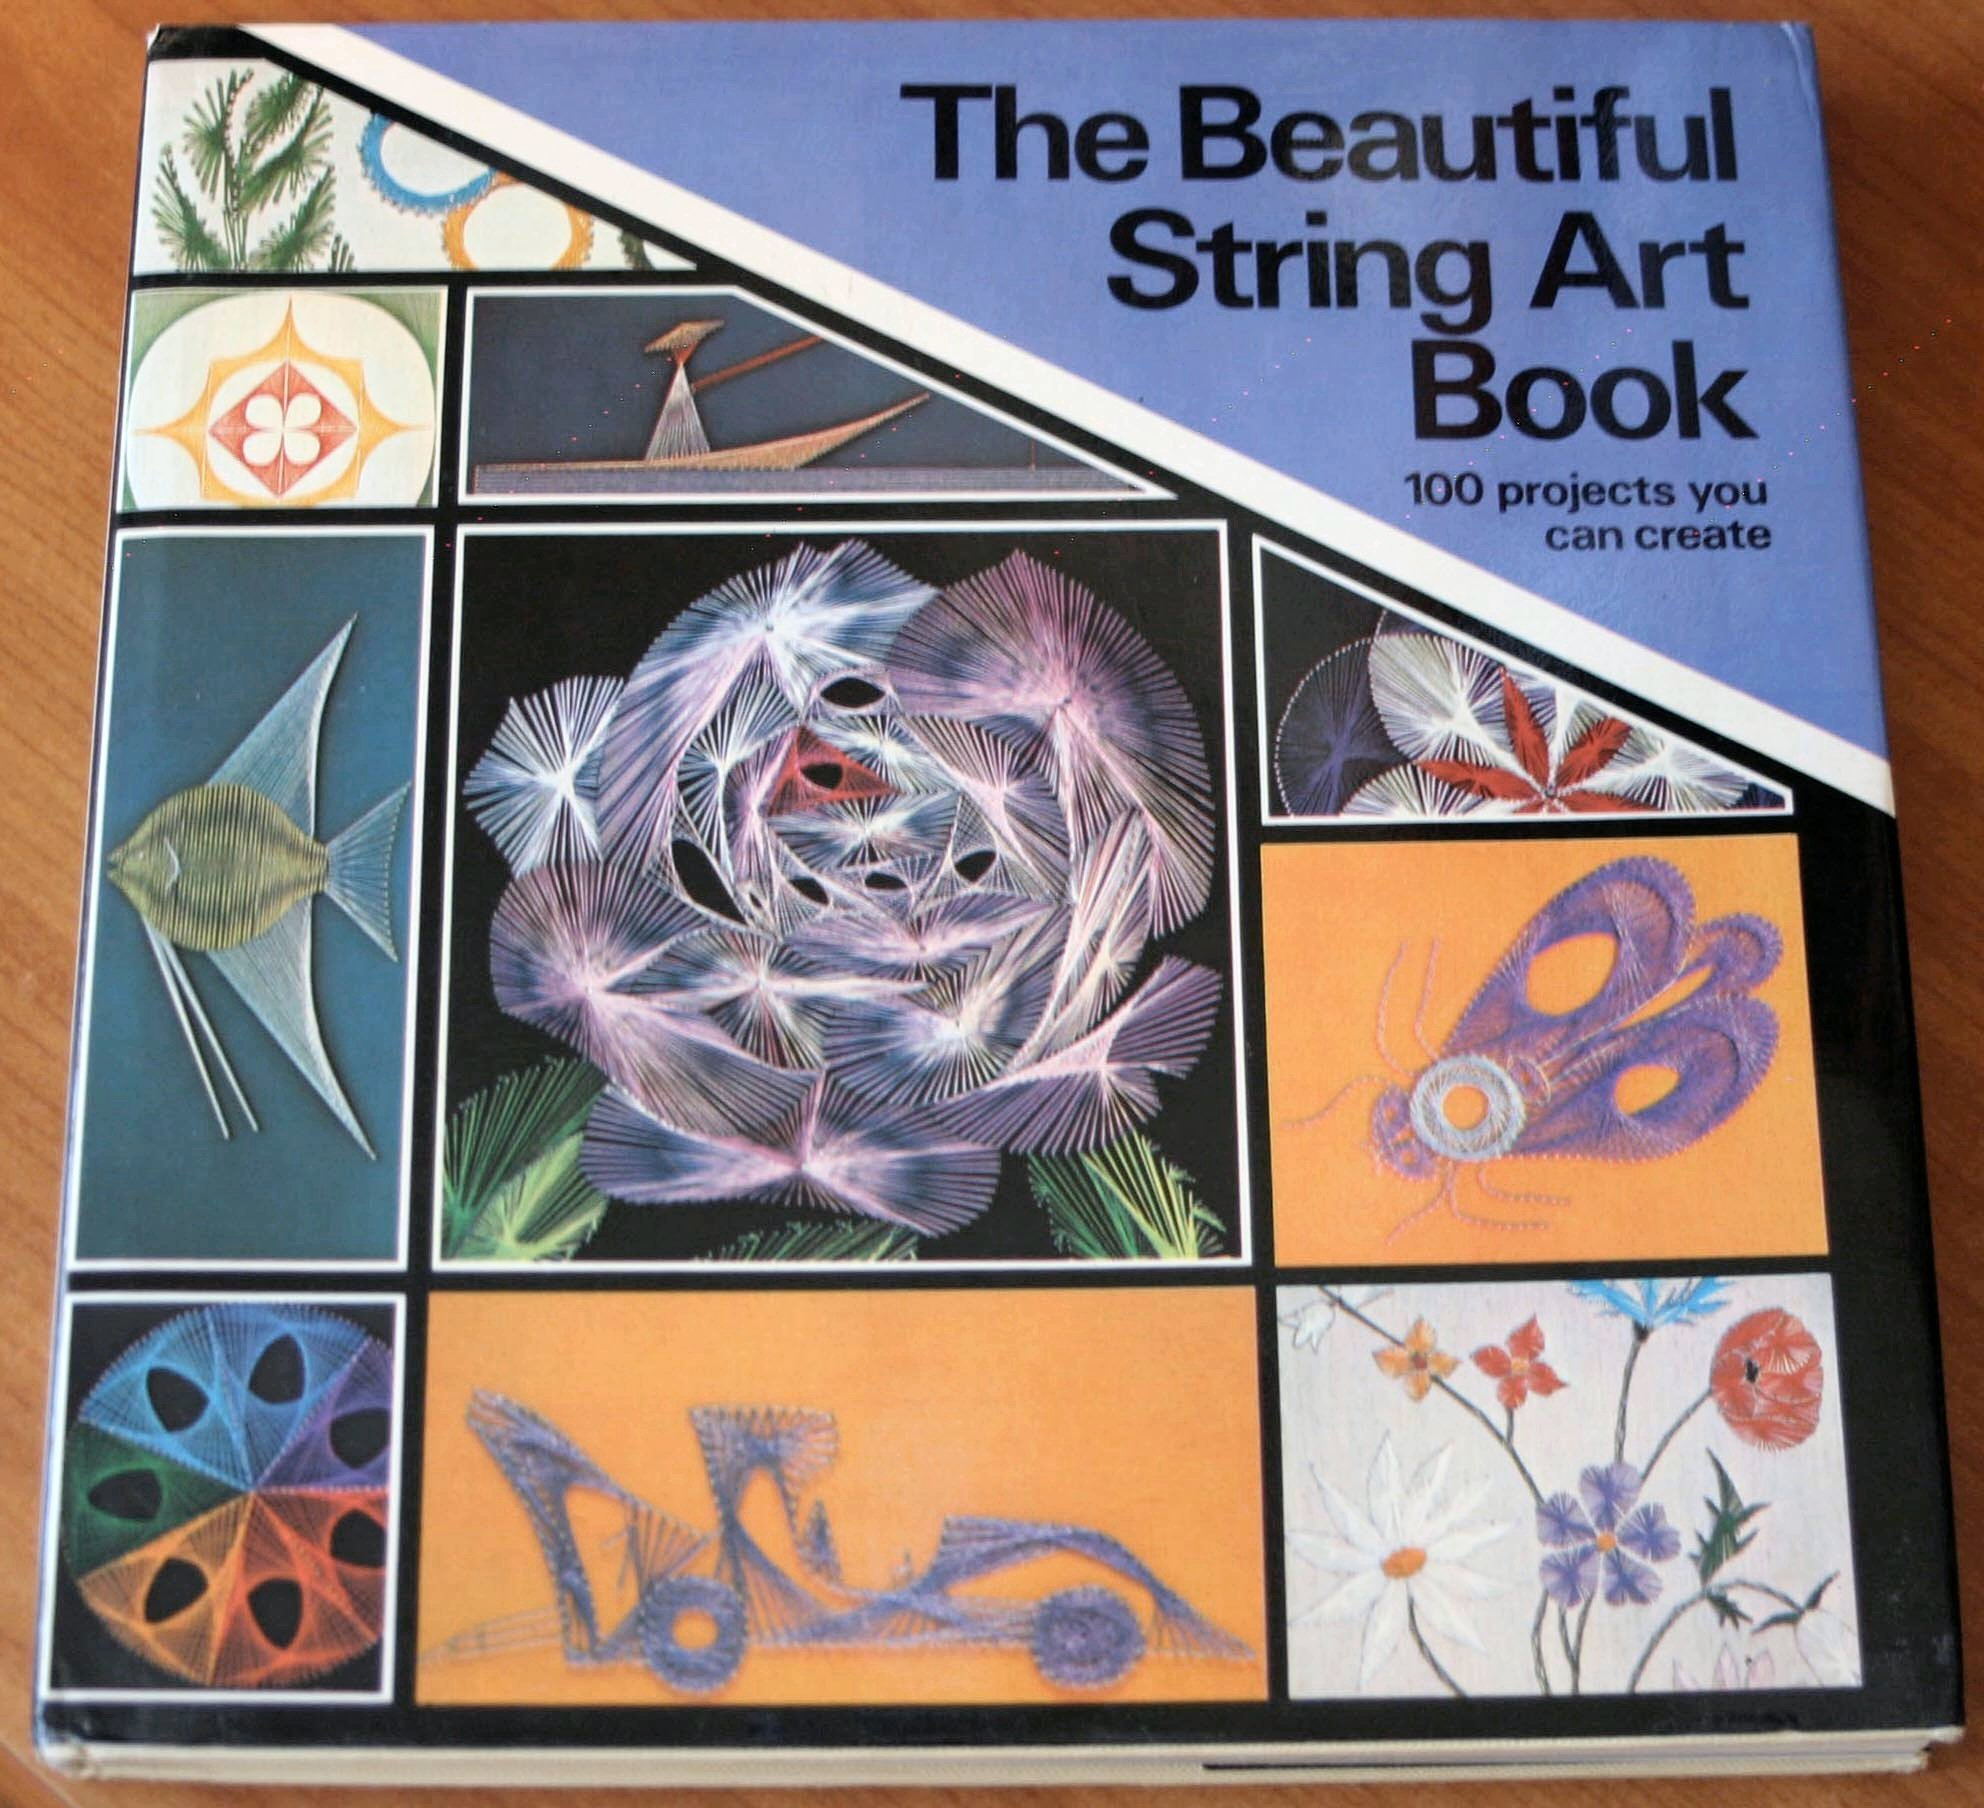 The Beautiful String Art Book 100 Projects You Can Create